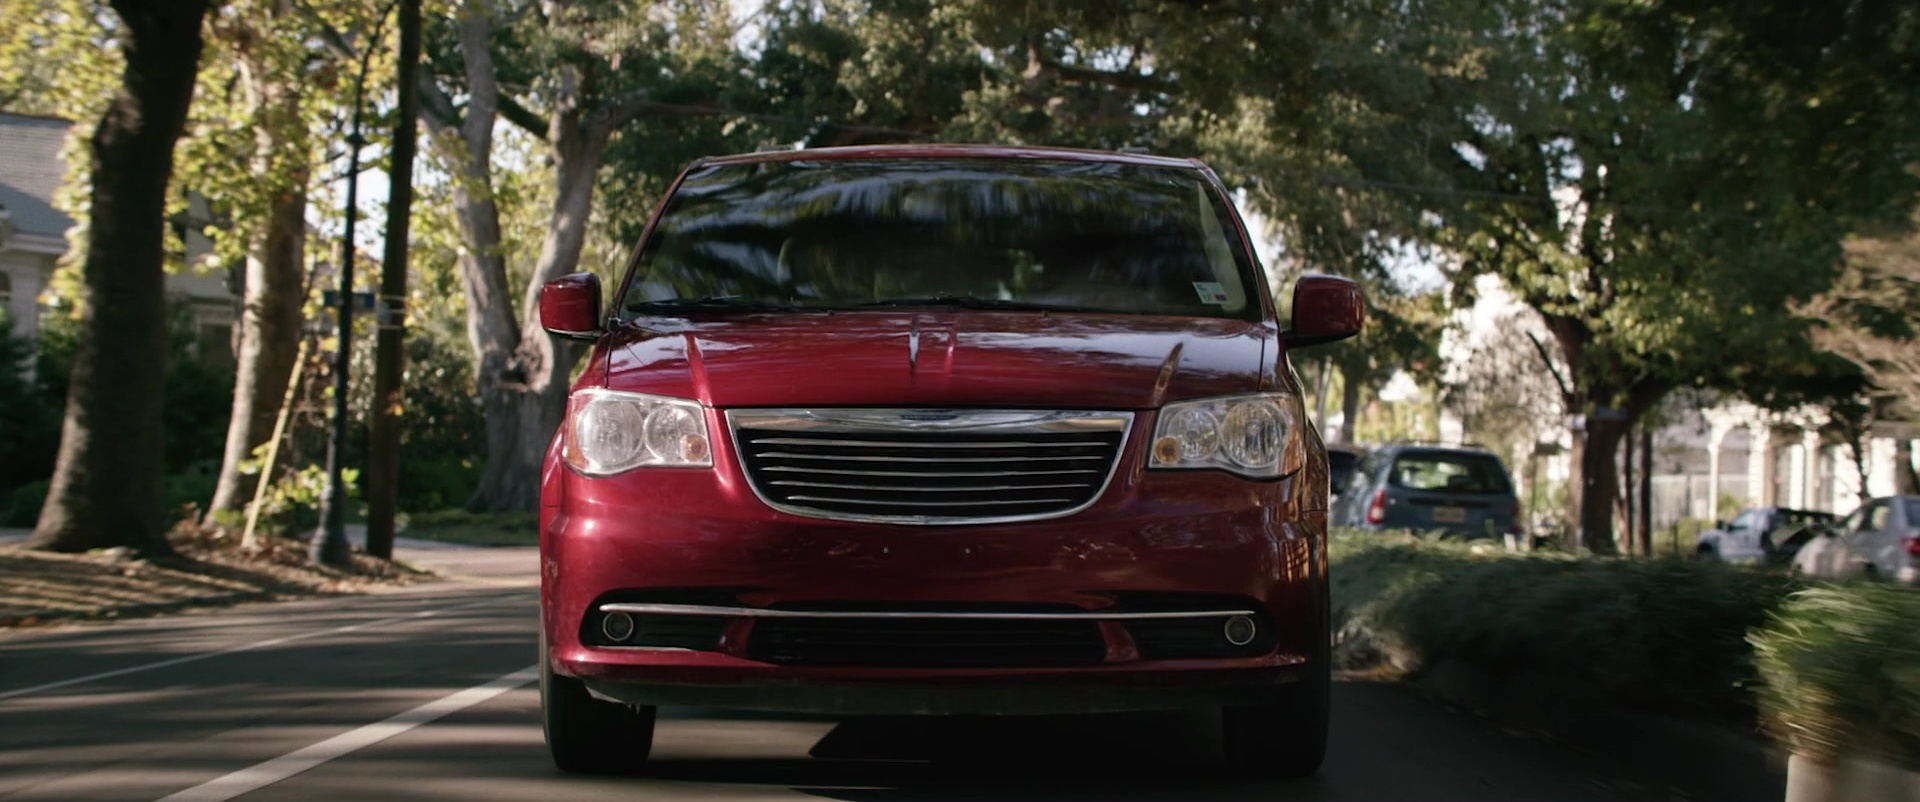 van and vin for country michigan fremont chrysler in mi touring used town htm sale